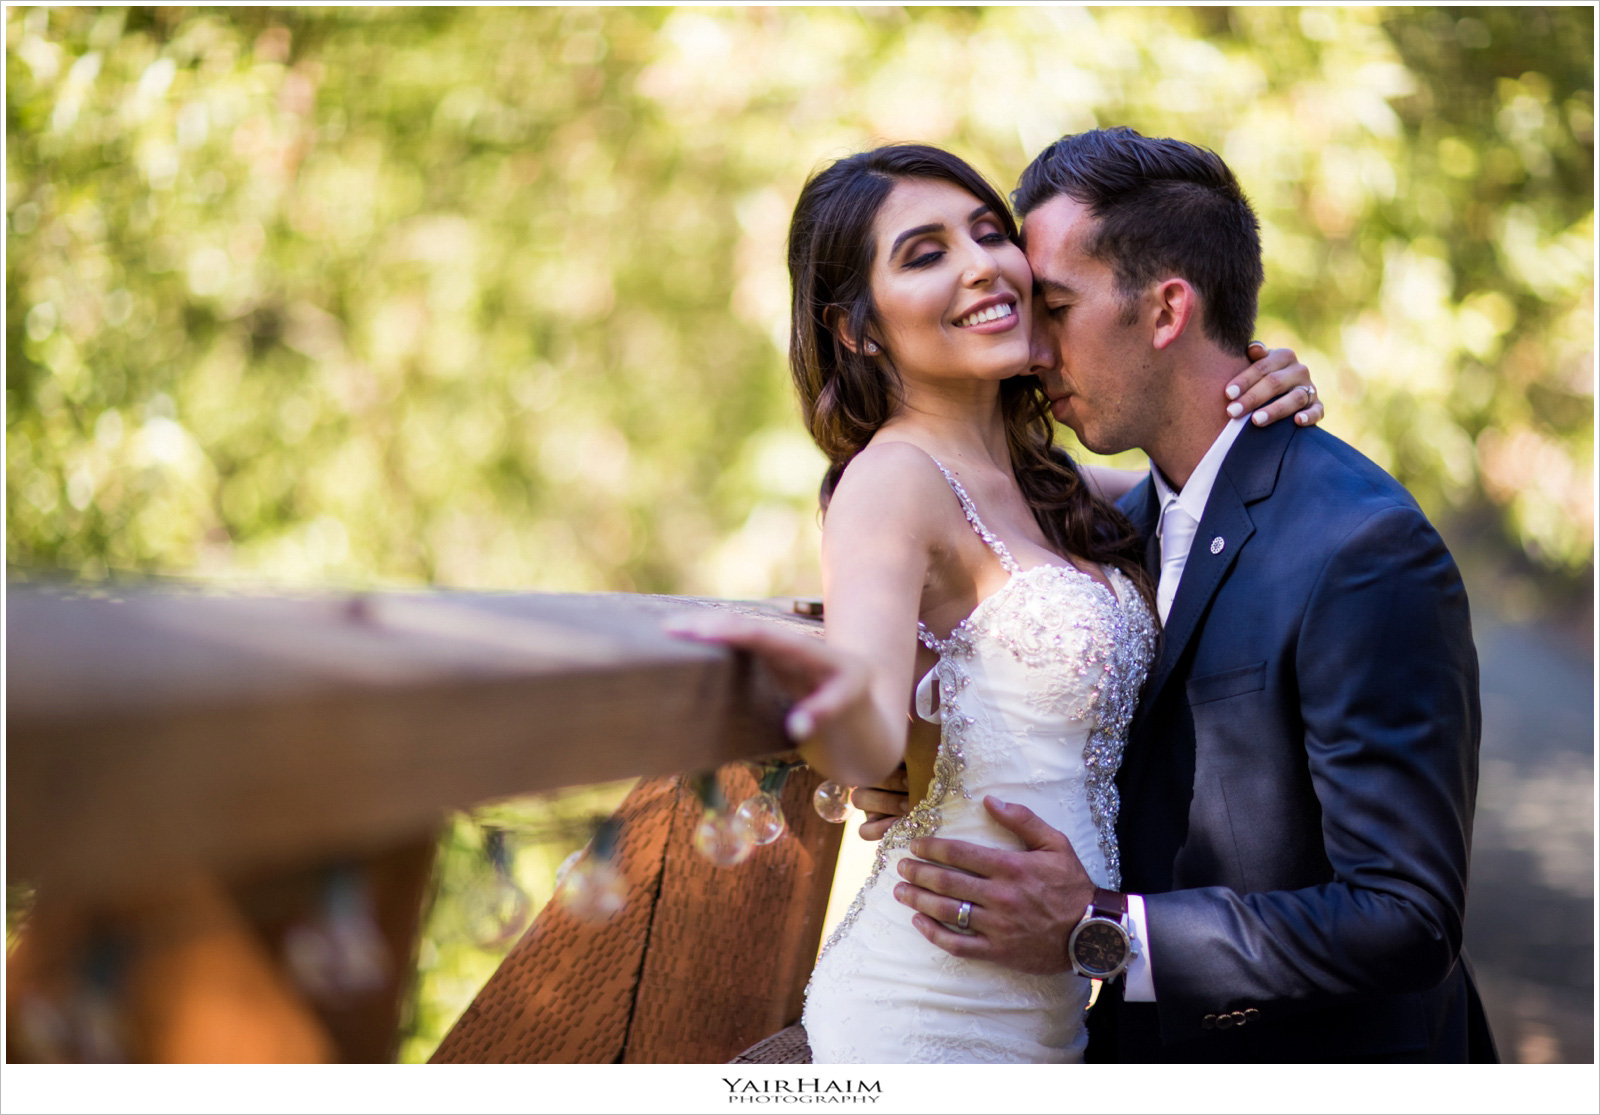 Destination-wedding-photographer-Yair-Haim-33